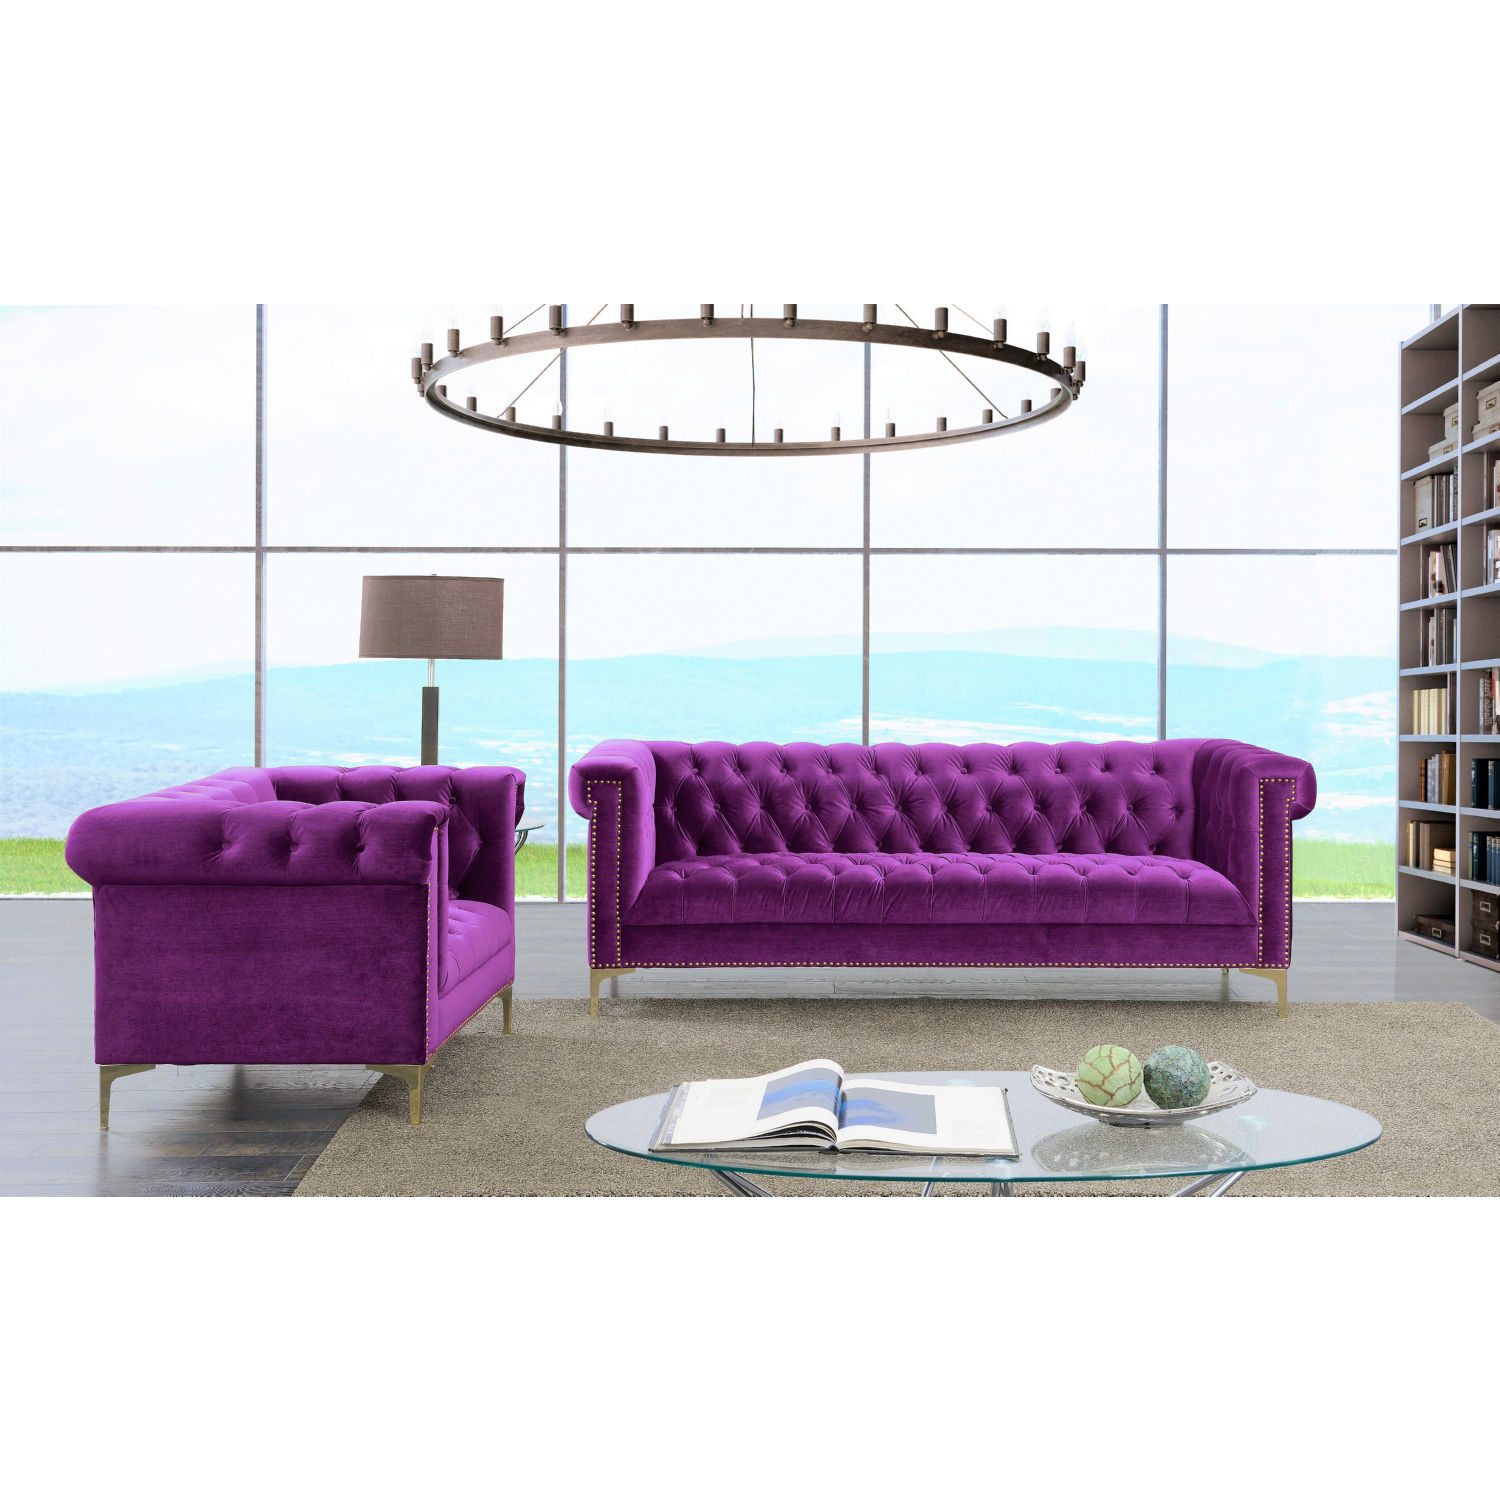 Chic Home FSA2613 DR Bea Sofa in Tufted Violet Velvet w Gold